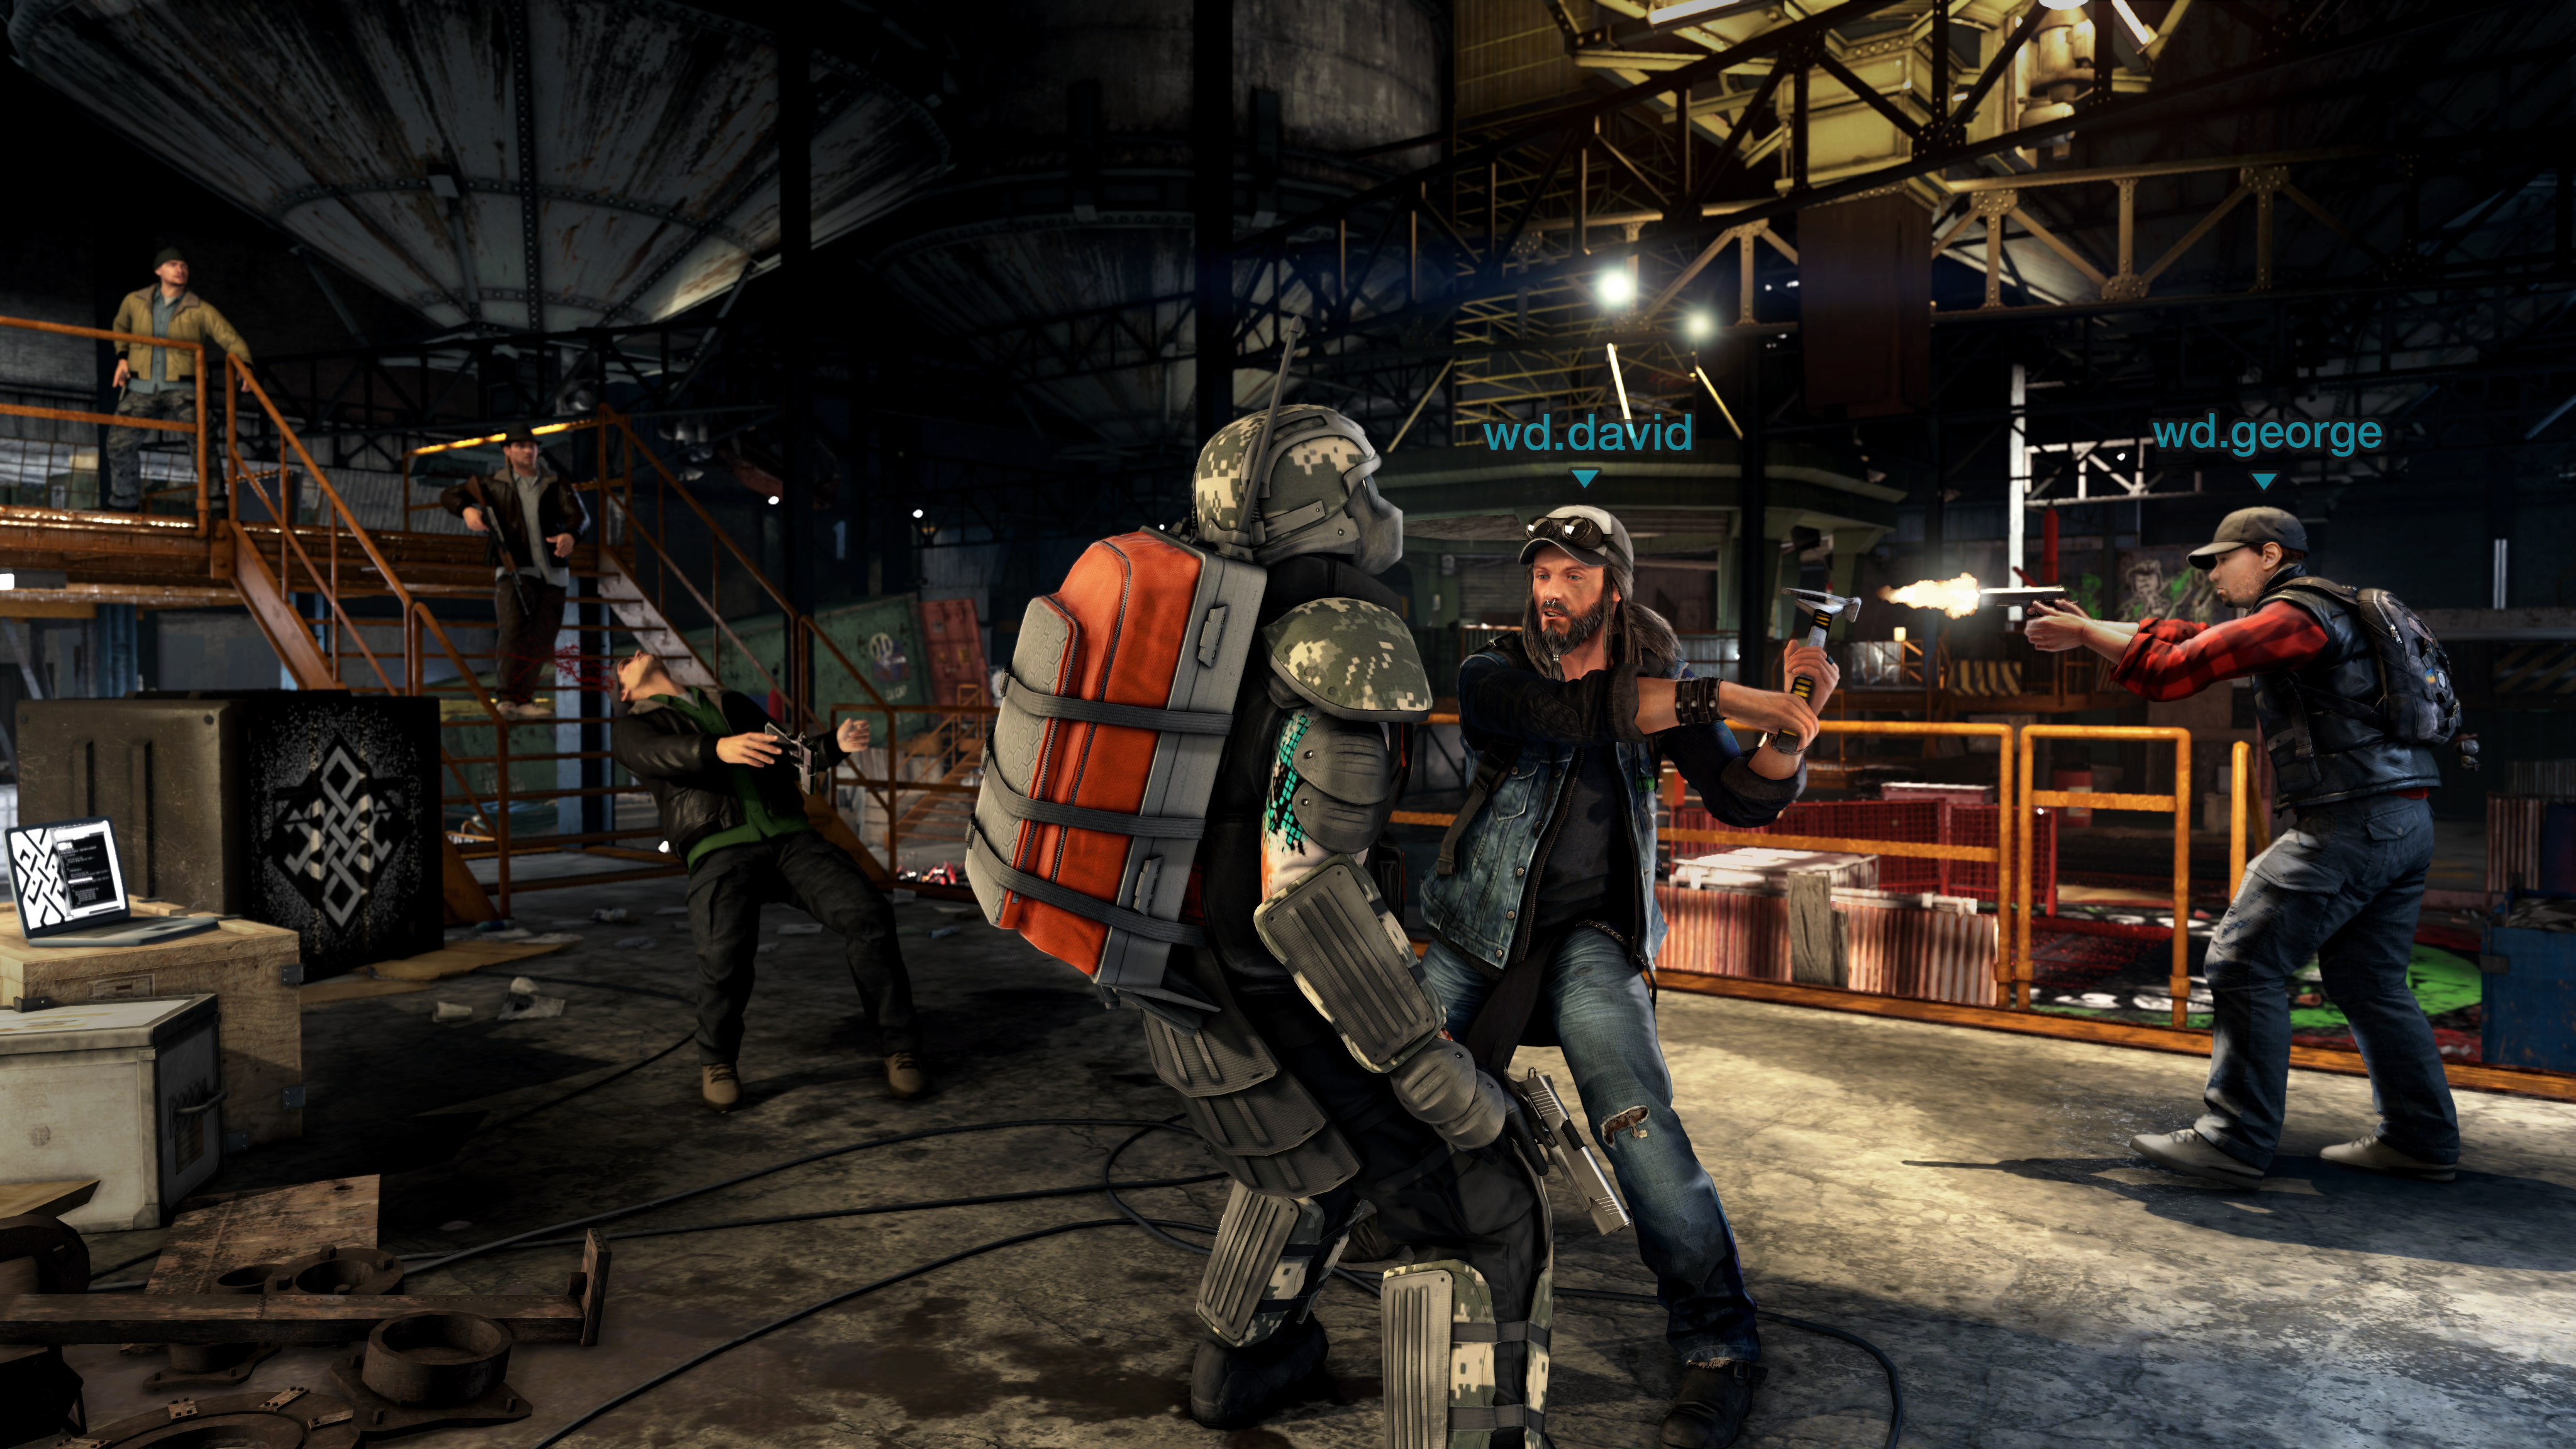 Watch_Dogs: Bad Blood